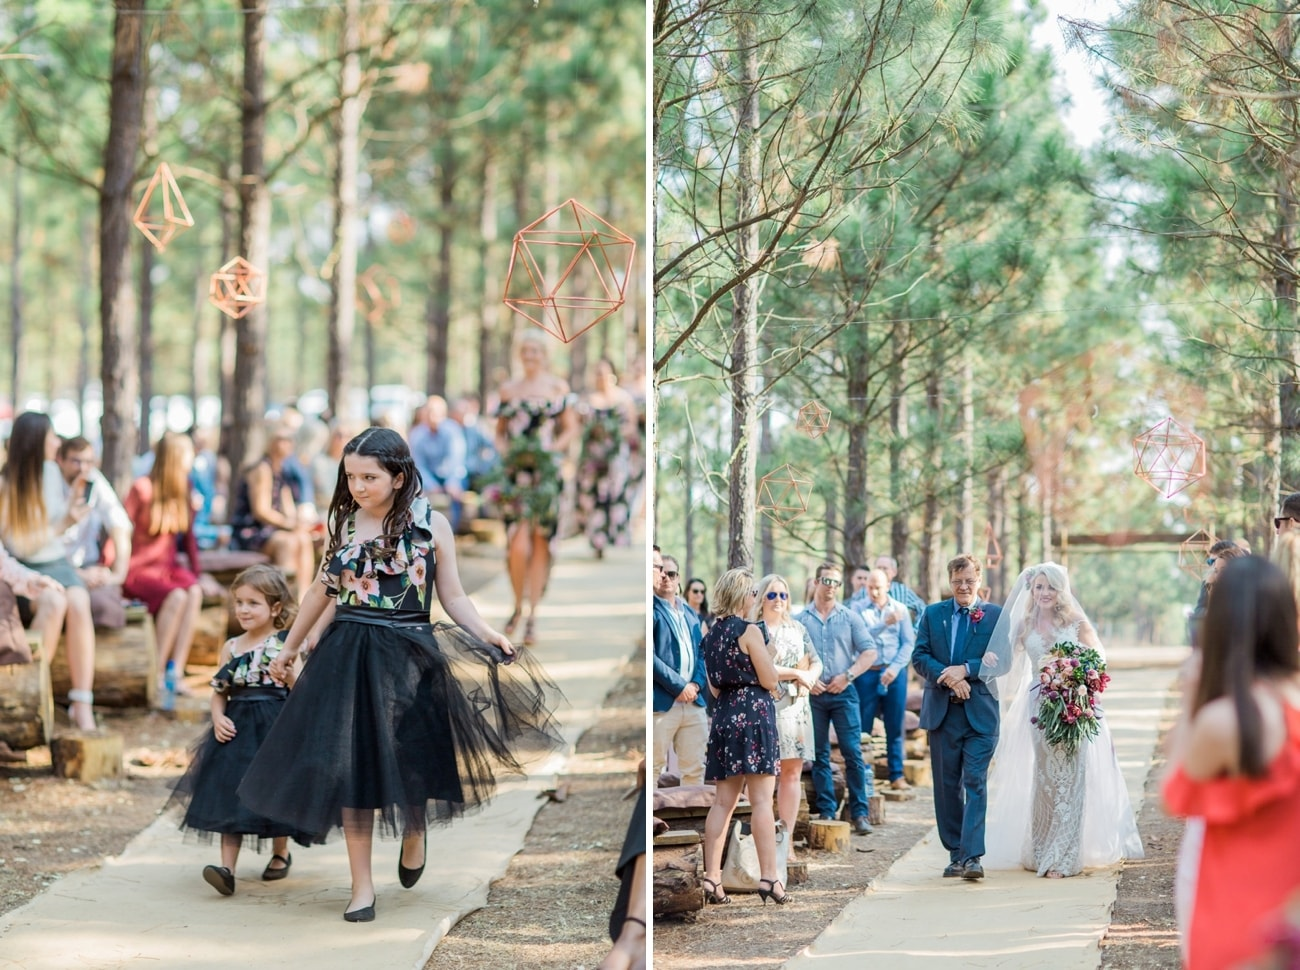 Forest Wedding Ceremony | Image: Grace Studios